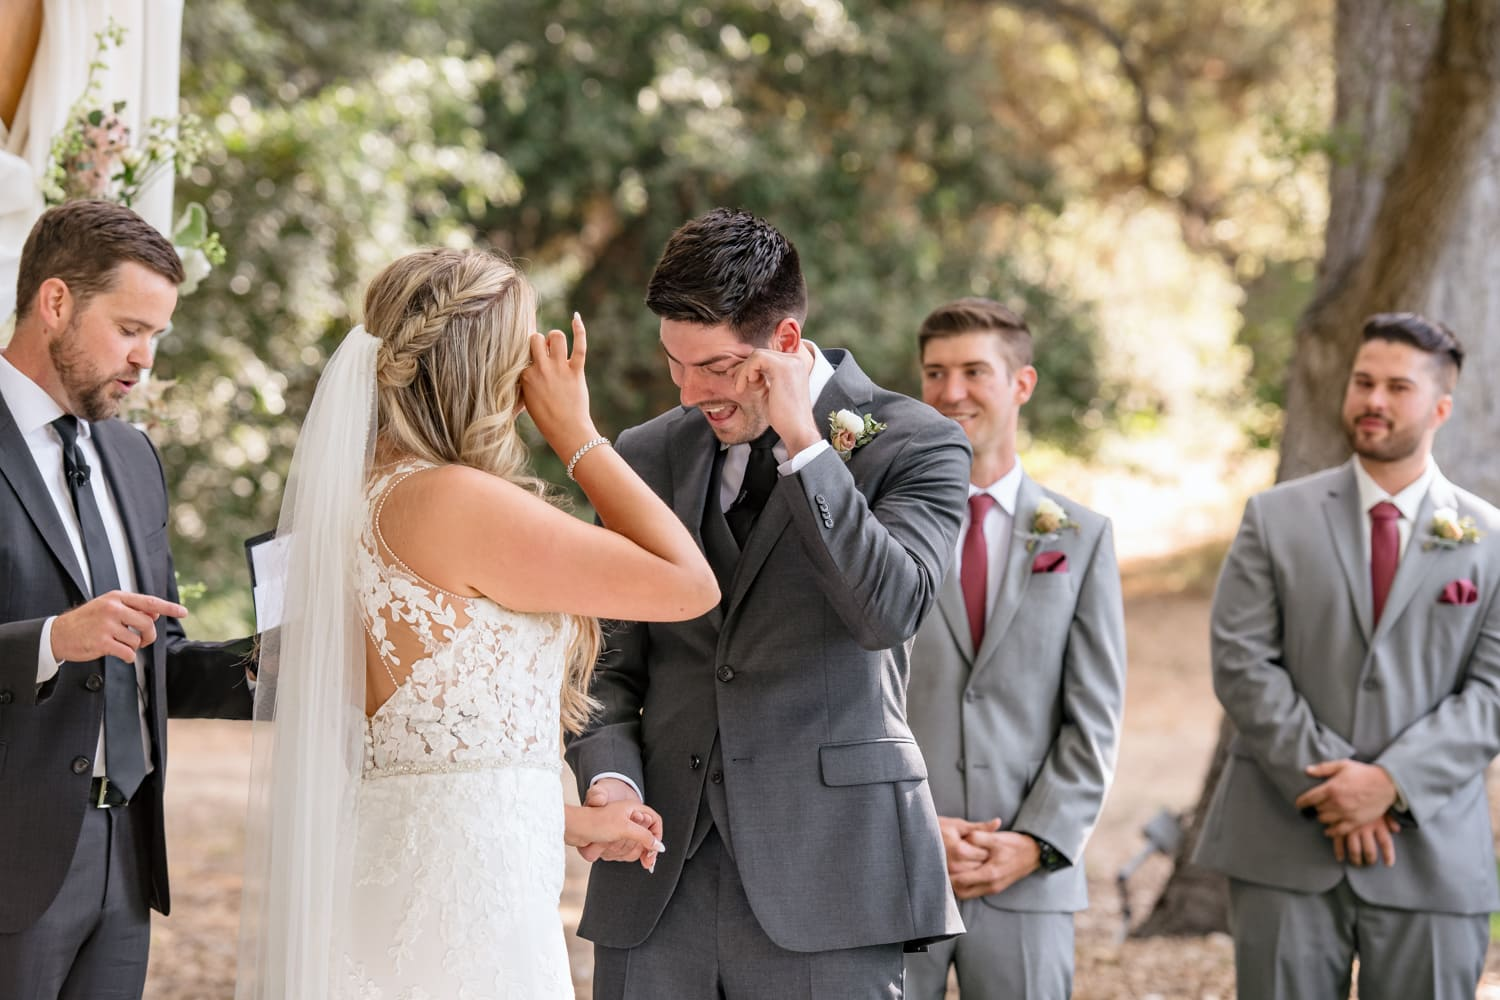 Bride and groom crying during wedding ceremony at The Stone House in Temecula, CA